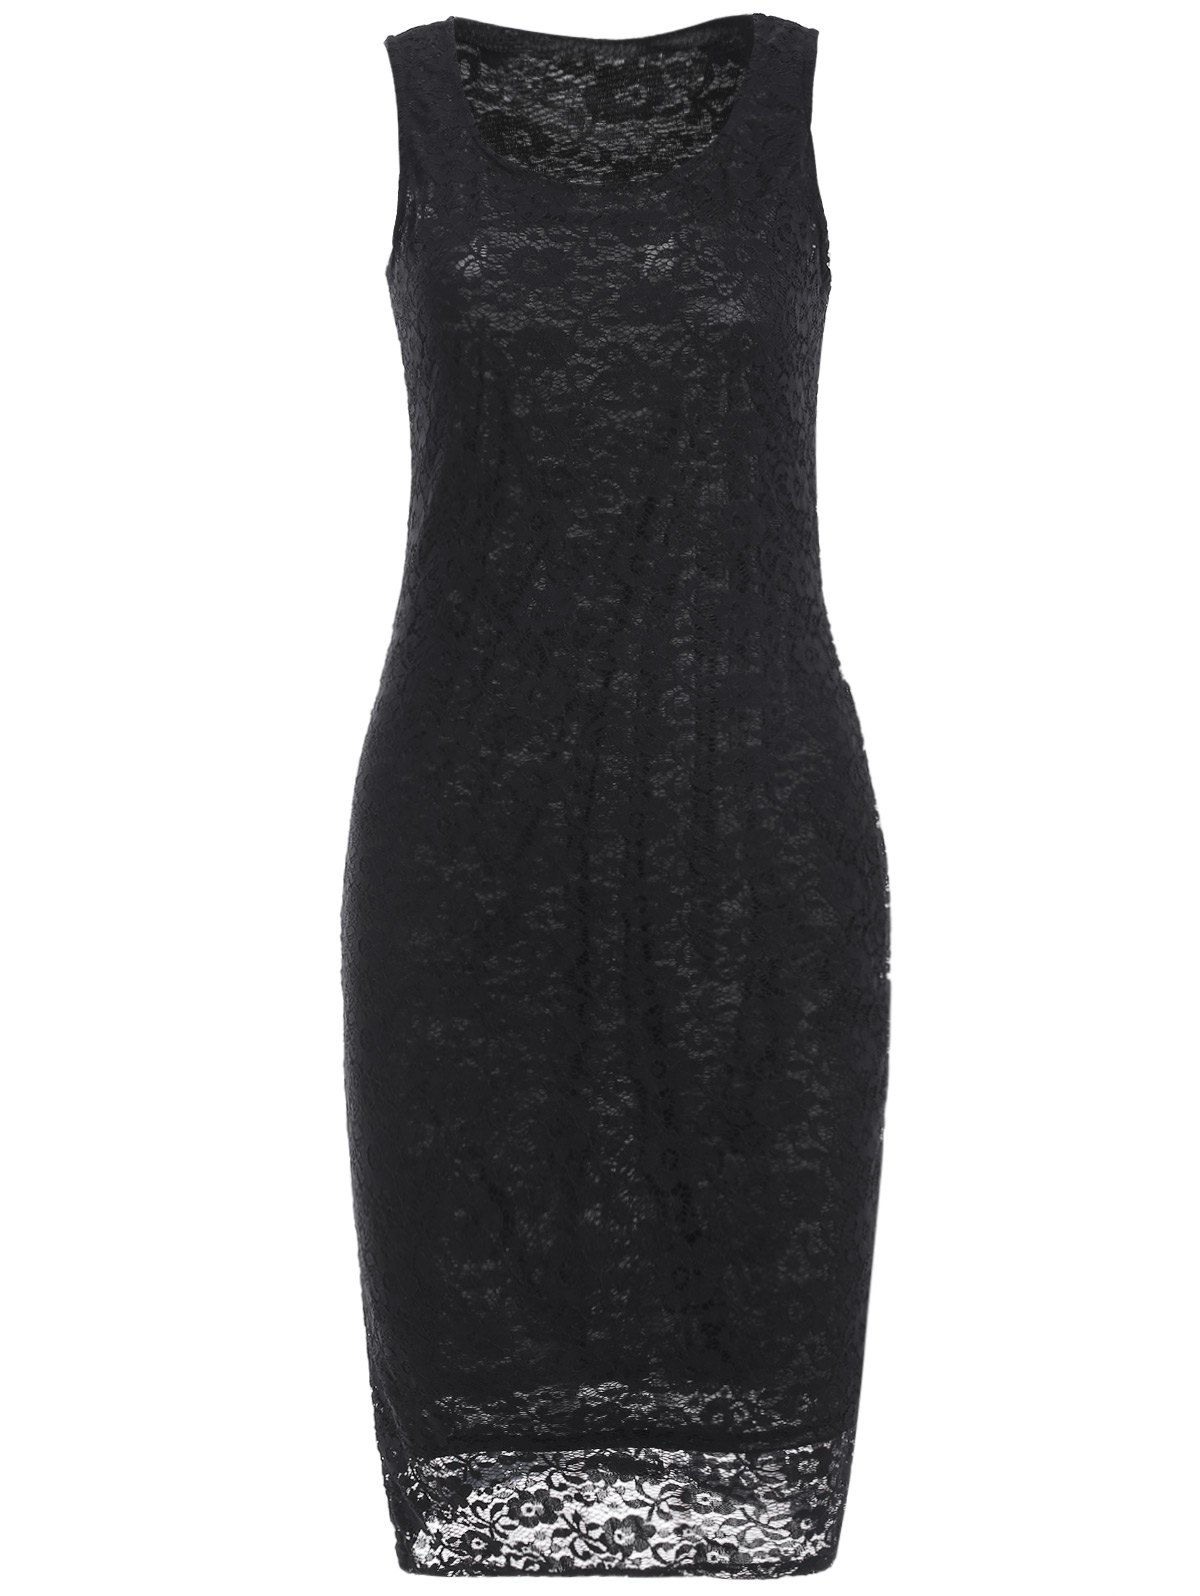 bfe1289fc16e5 2018 Openwork Lace Knee Length Sheath Dress In Black Xl